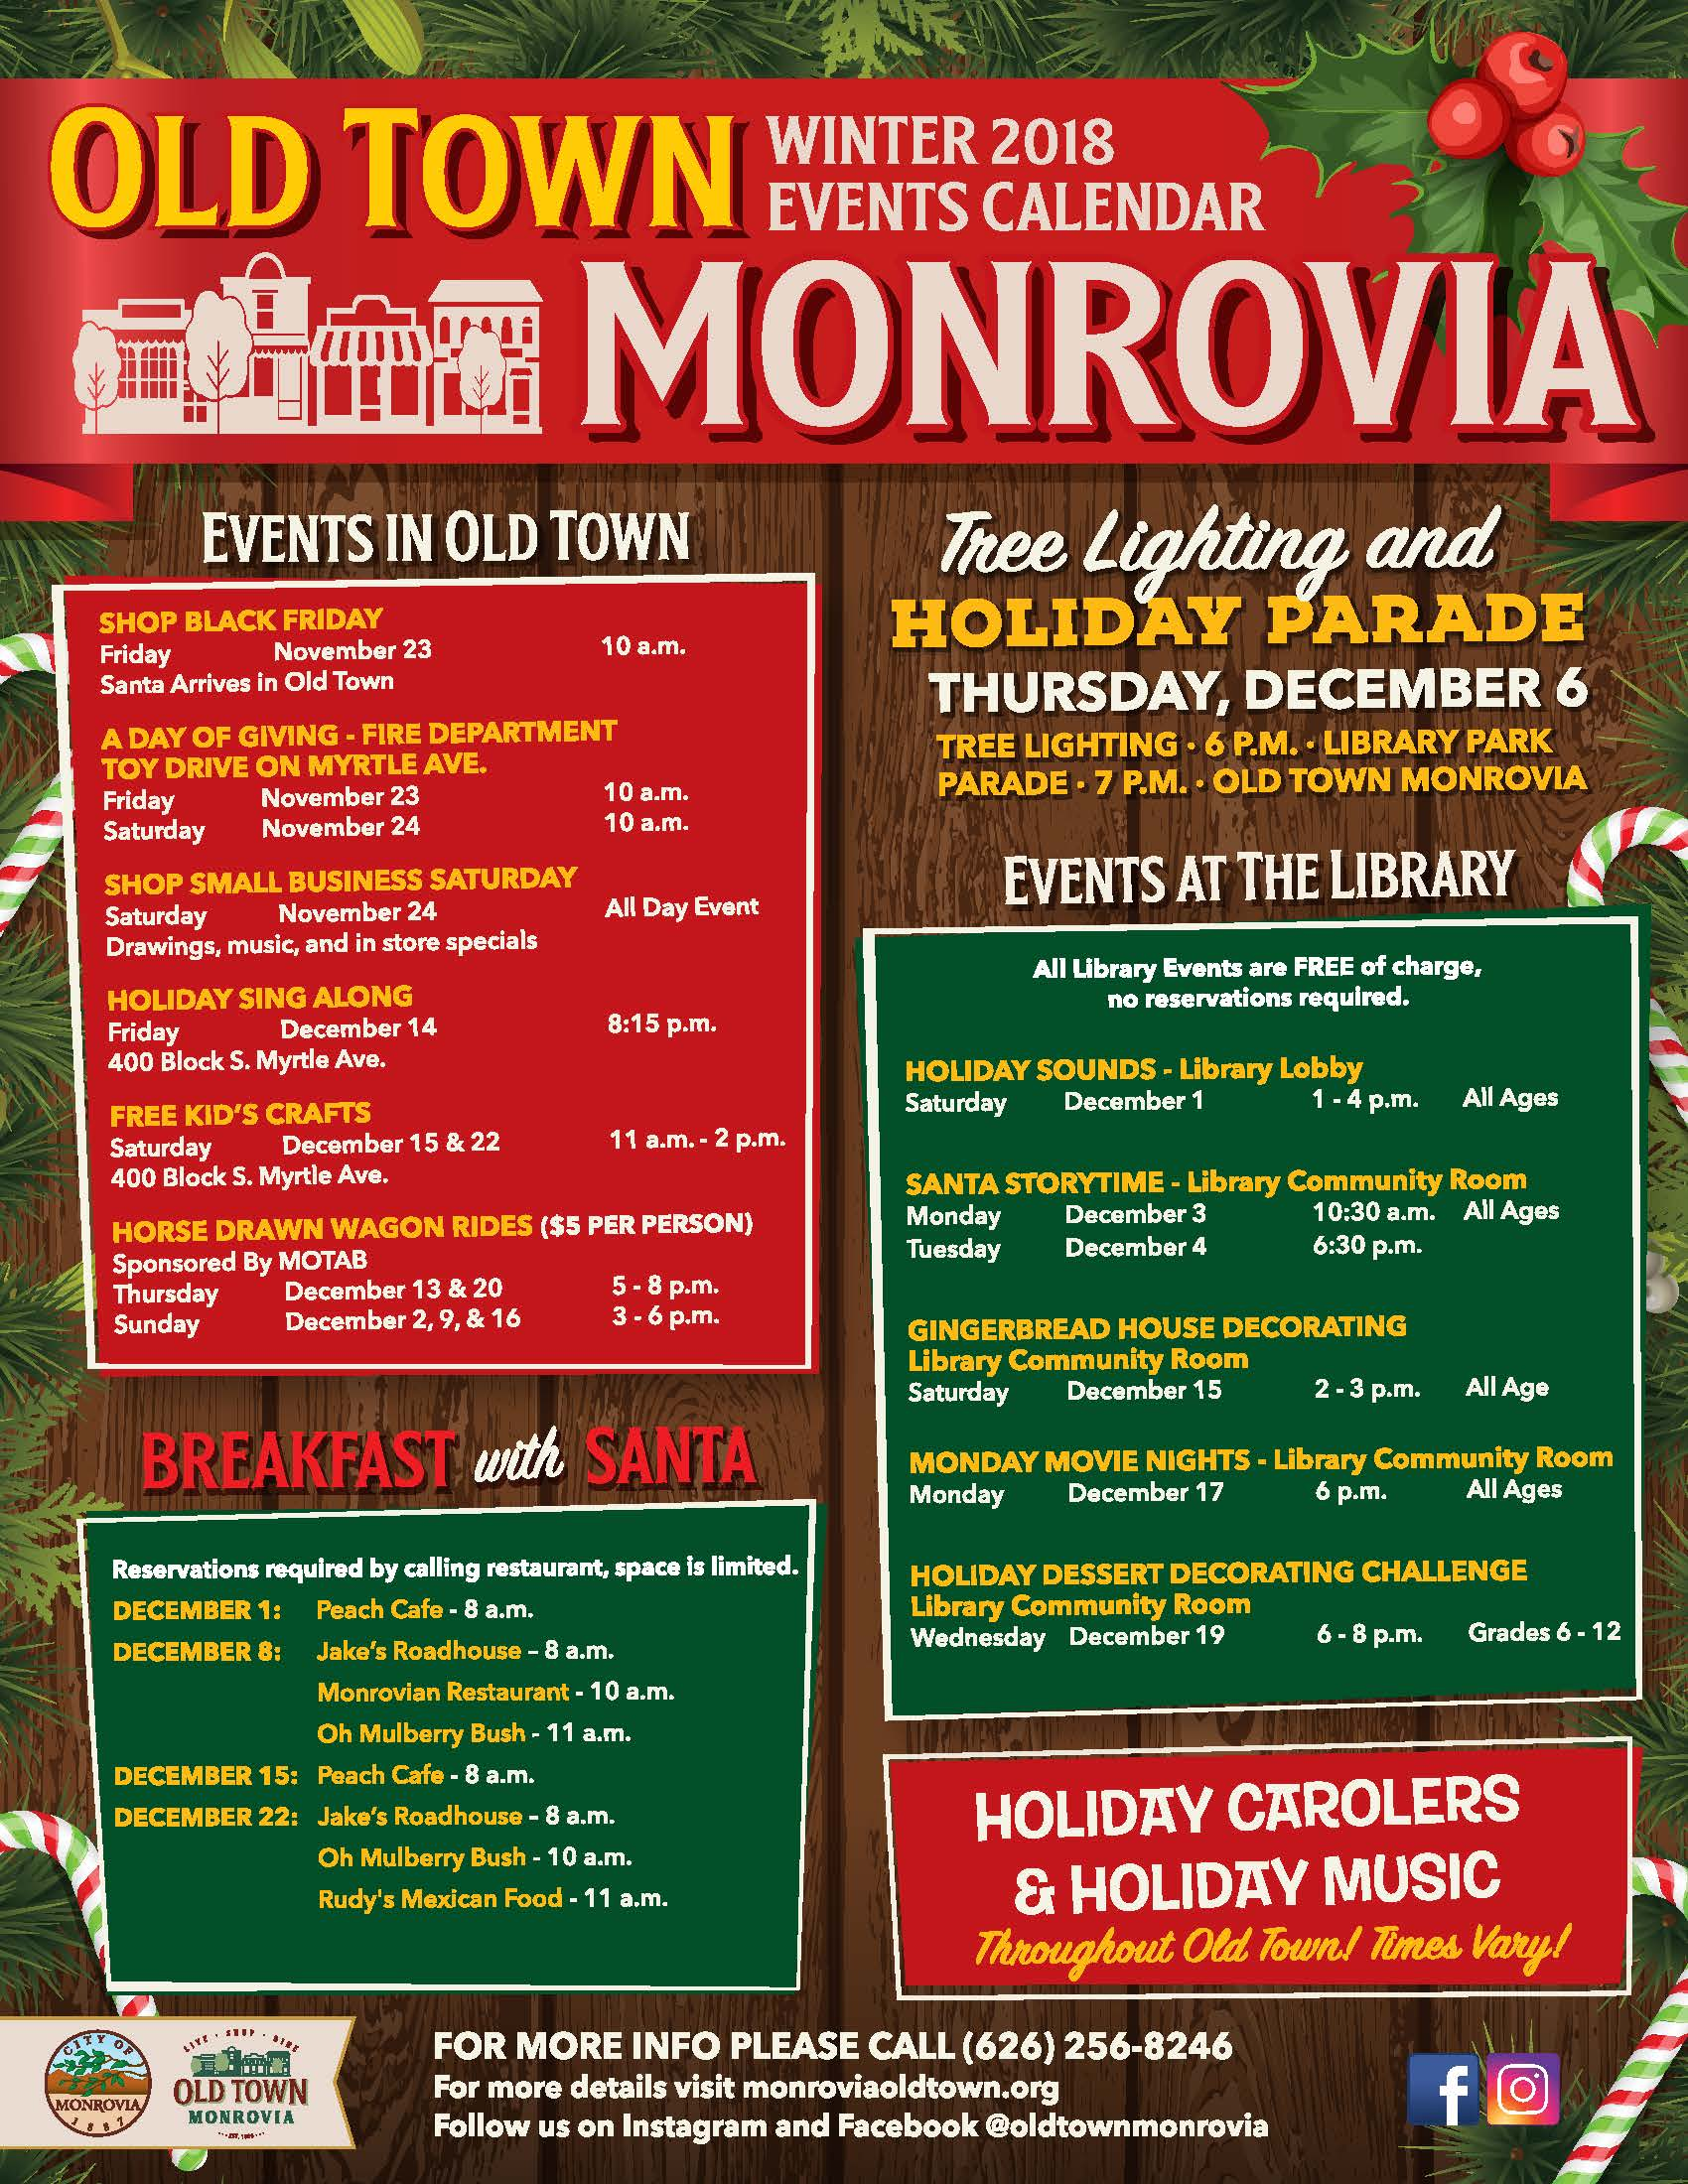 Monrovia Christmas Parade 2019 Special Holiday Events & Activities in Old Town Monrovia | City